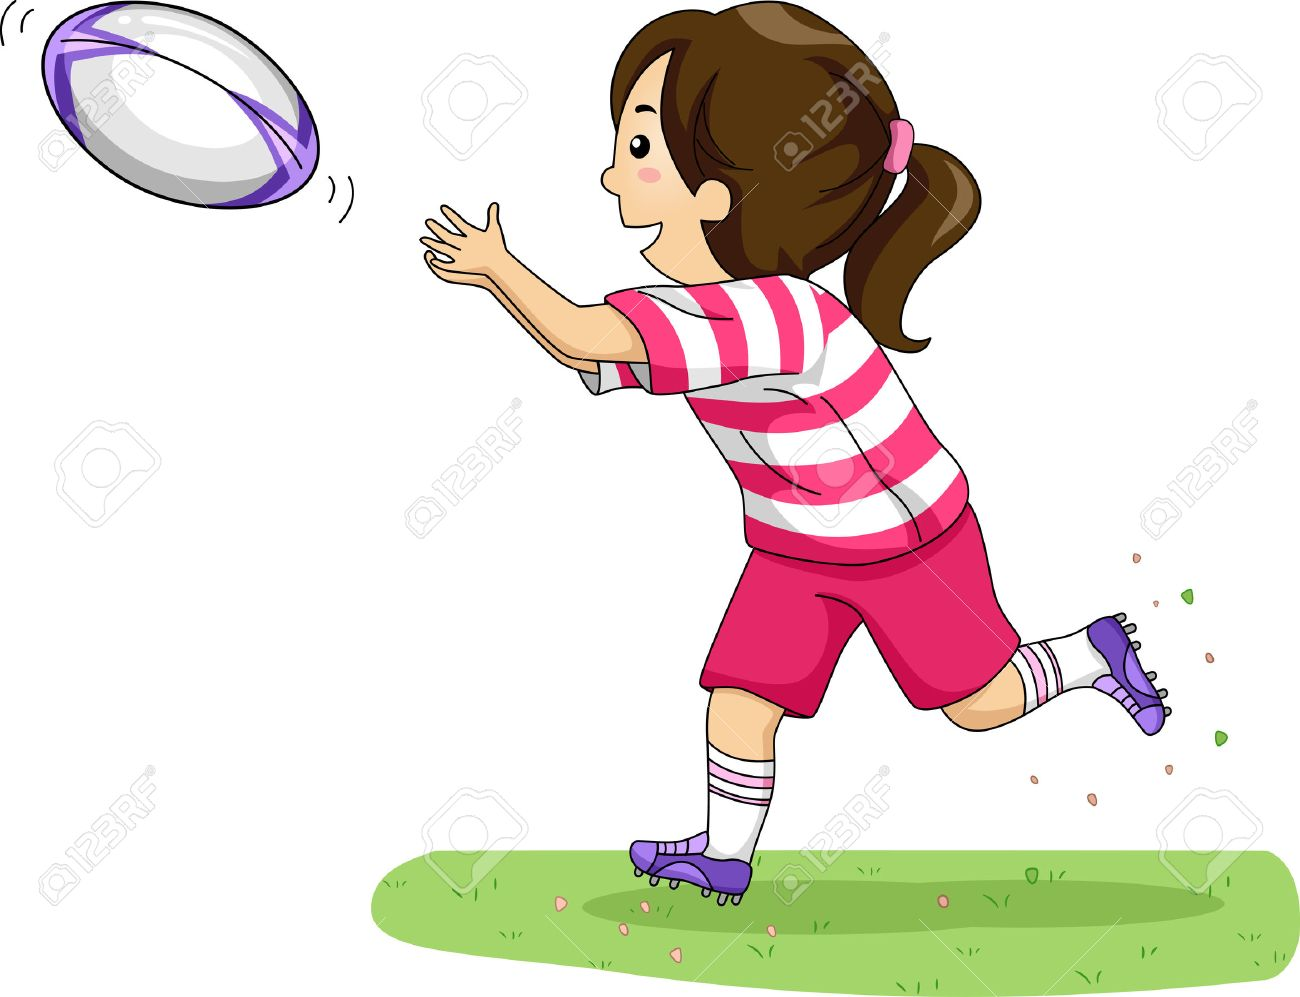 Illustration of a Girl Catching a Rugby Ball.